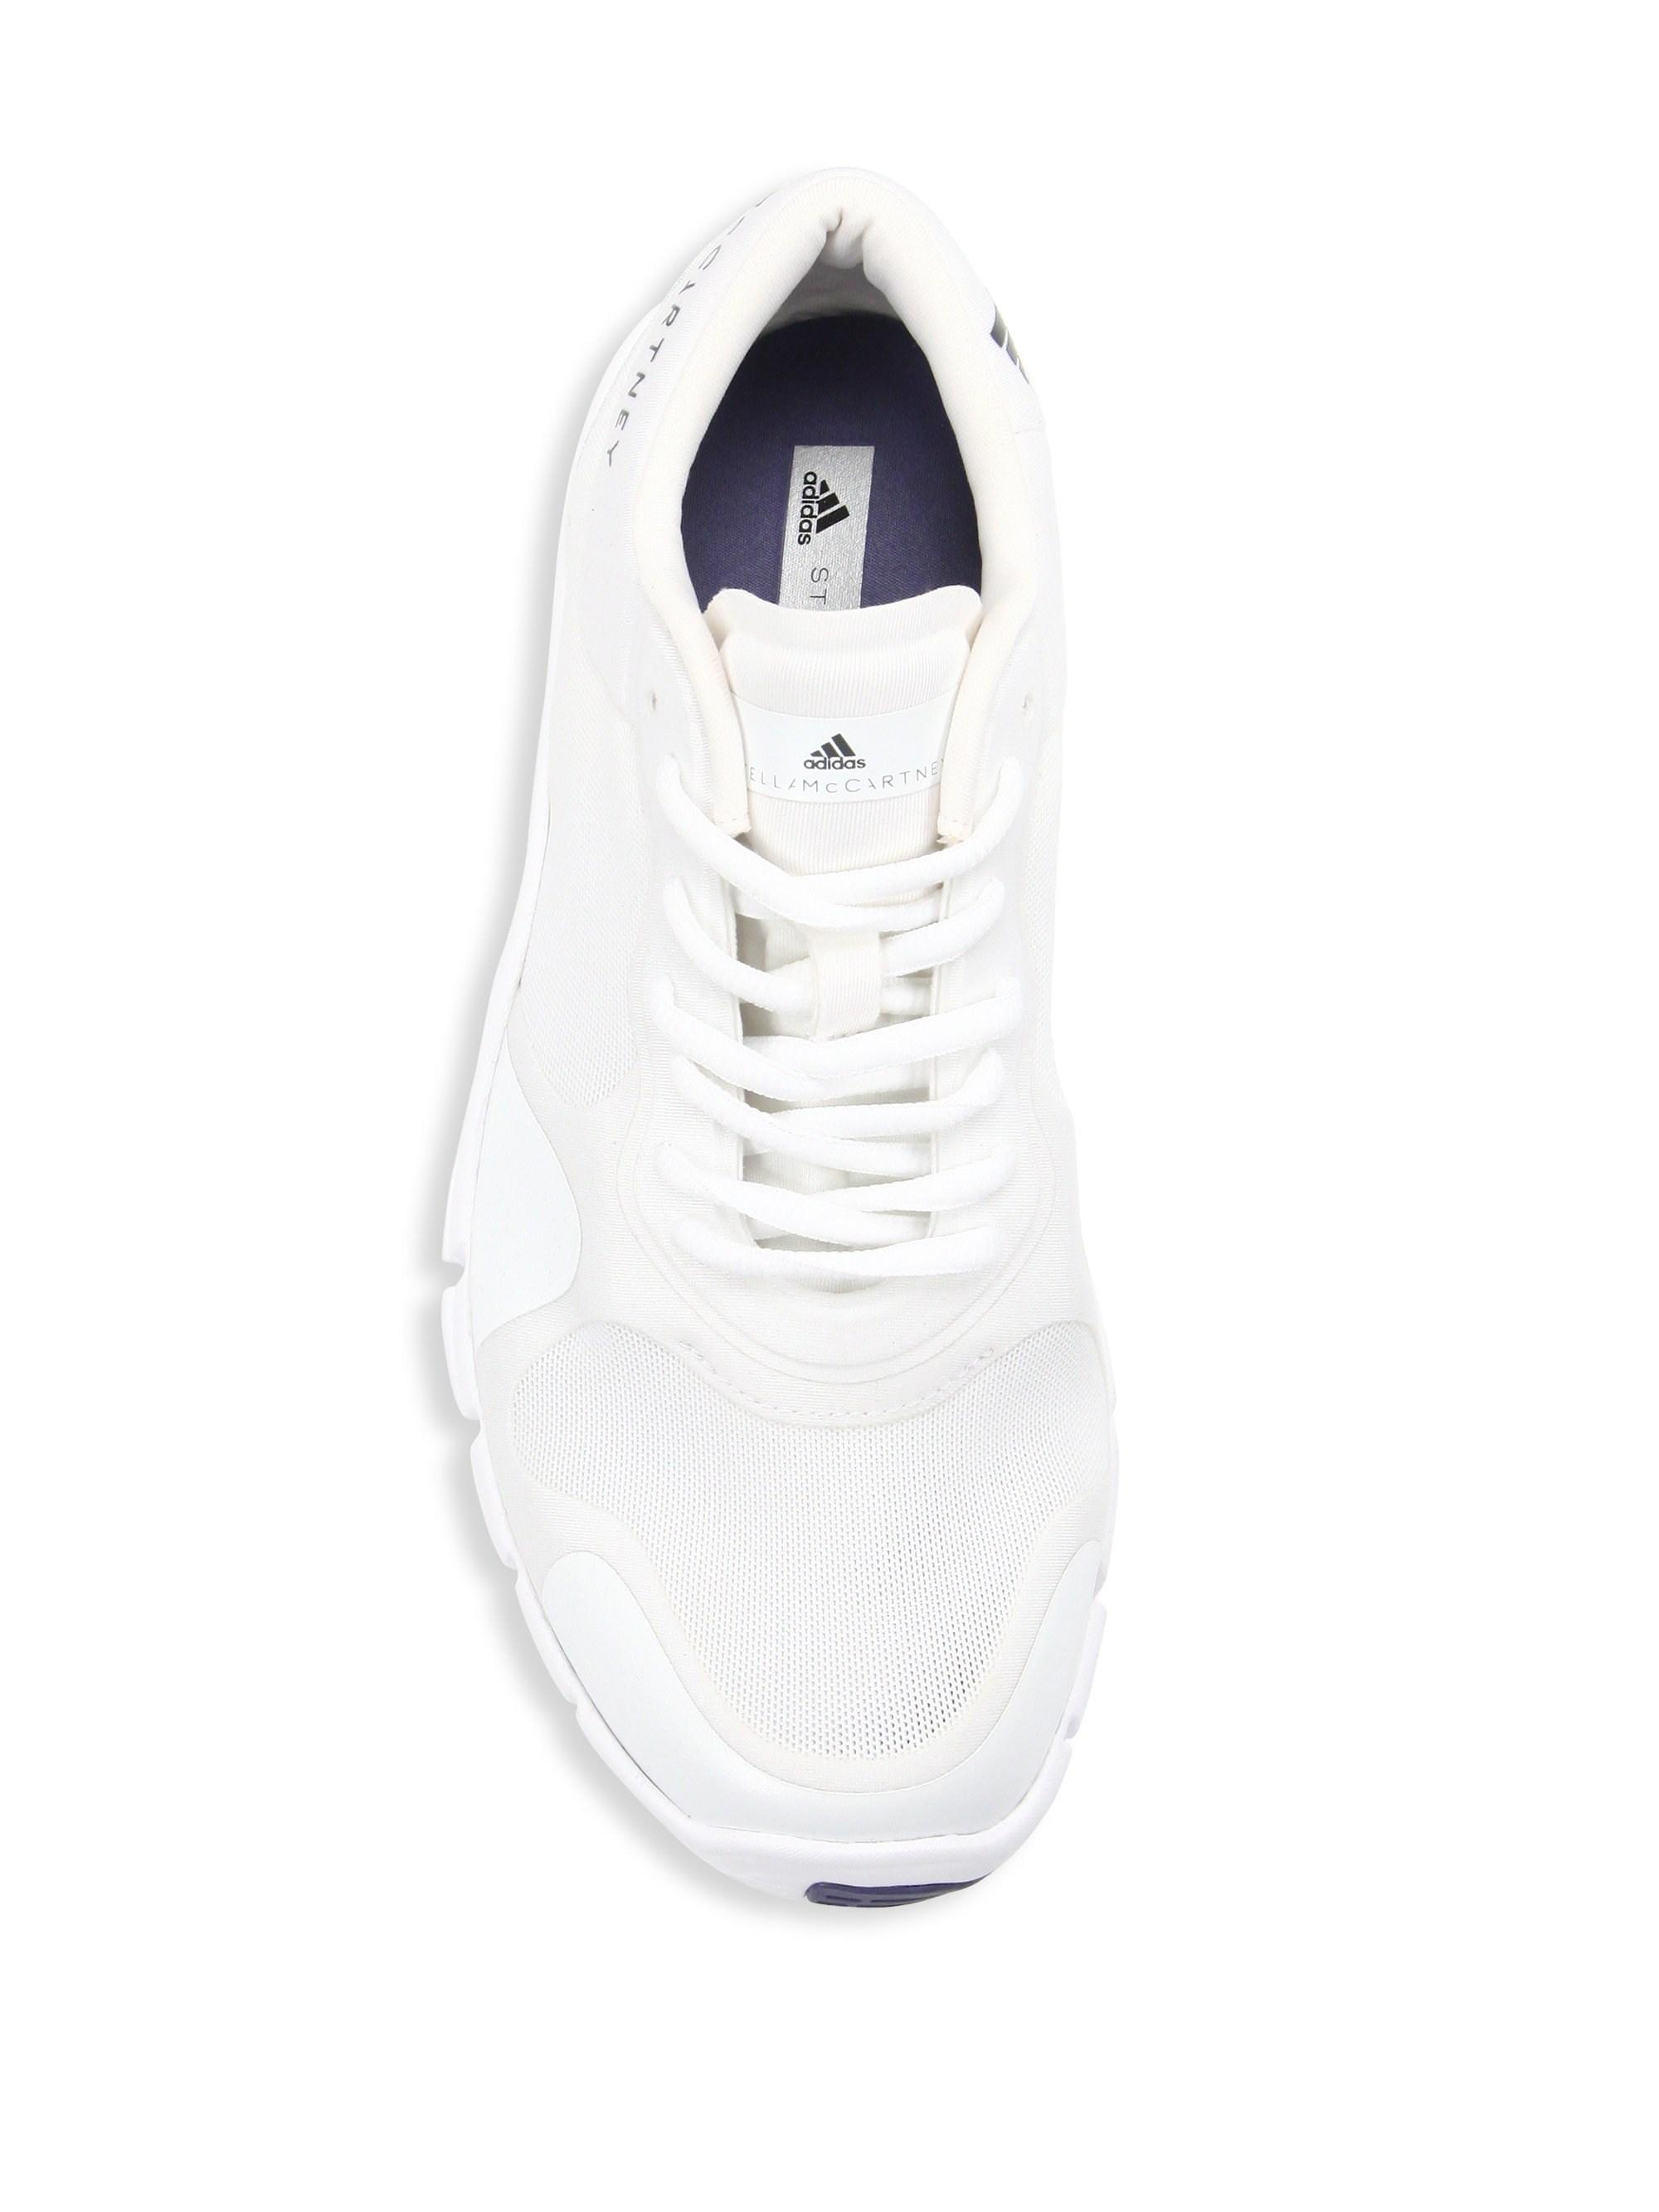 hot sale online aff94 a5f0d Adidas By Stella McCartney - White Adipure Trainer Sneakers - Lyst. View  fullscreen